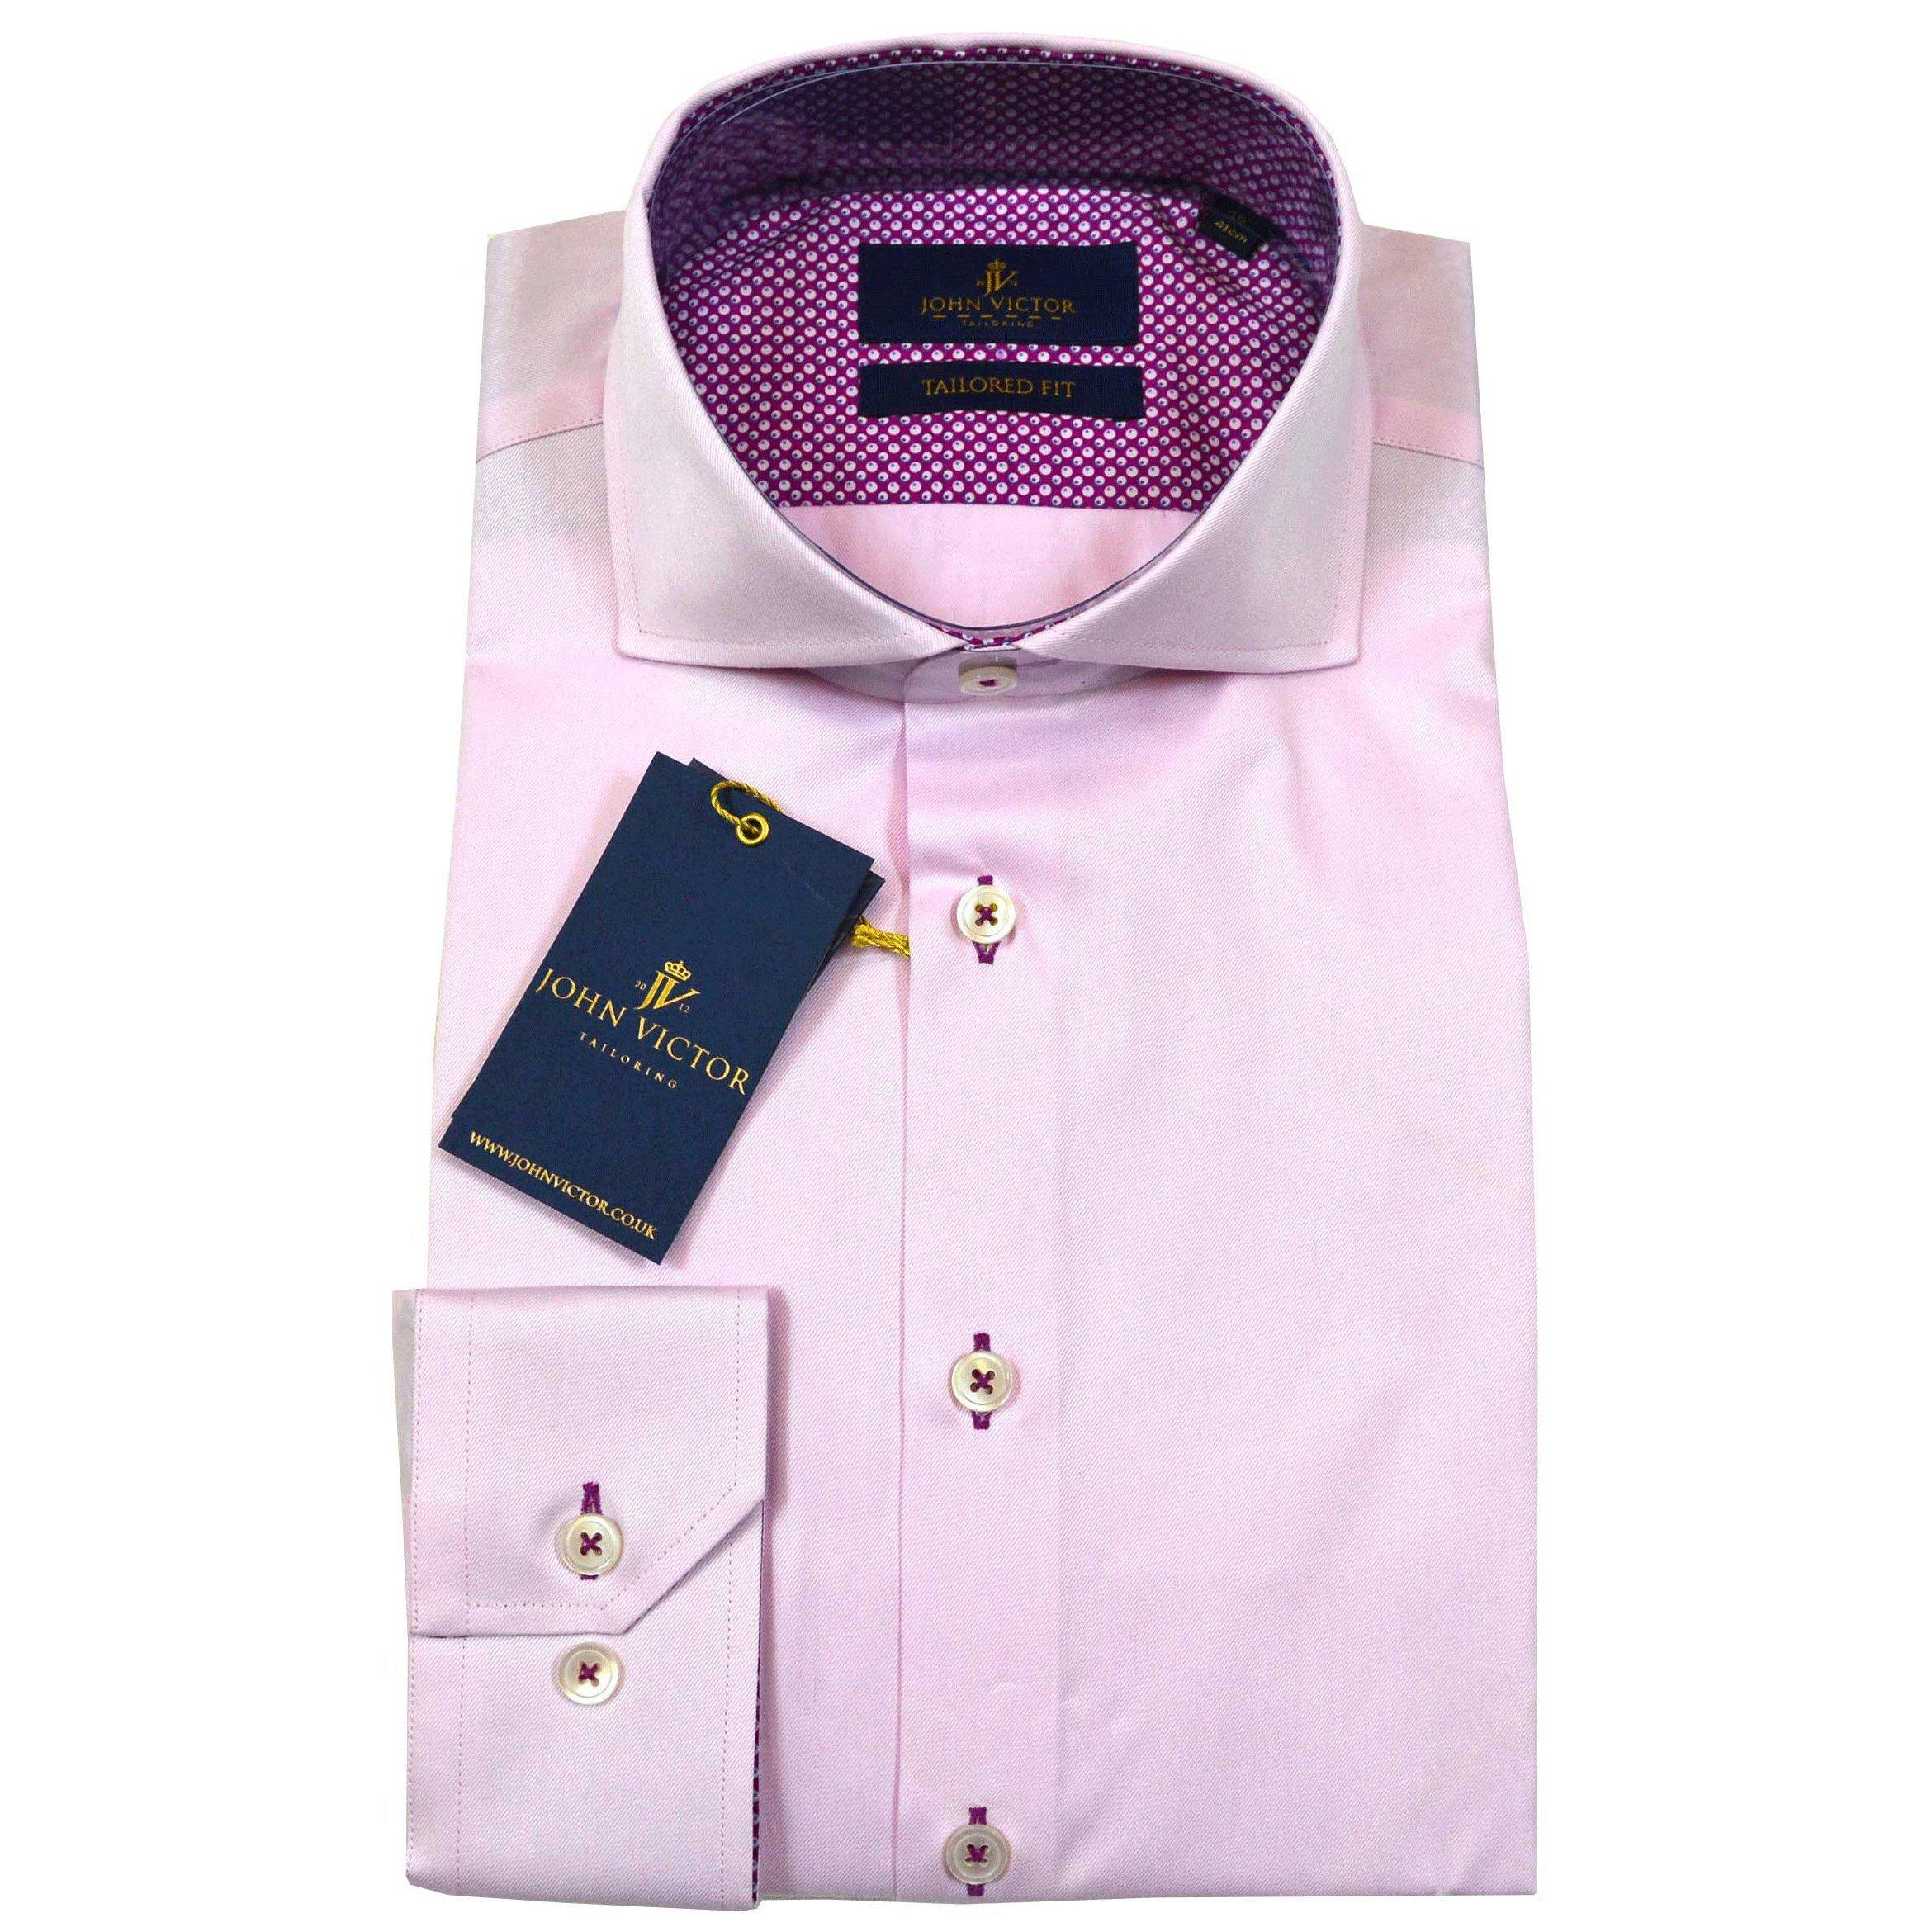 John Victor Tailored Fit Shirt Pink - Leonard Silver